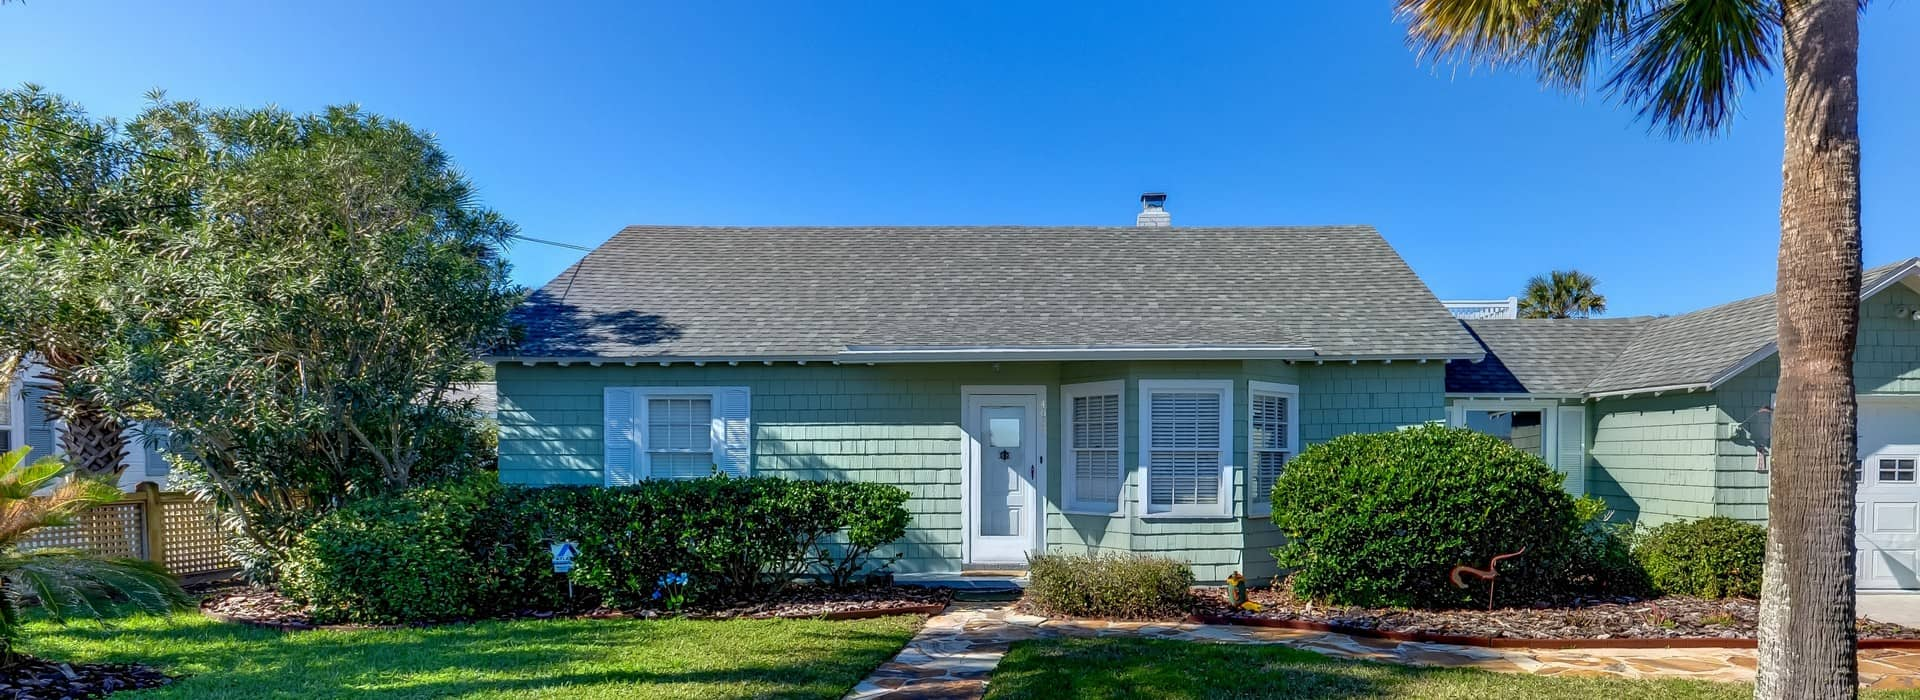 StayAmelia Vacation Rentals | Amelia Island Vacation Rental Homes, Cottages  And Condos